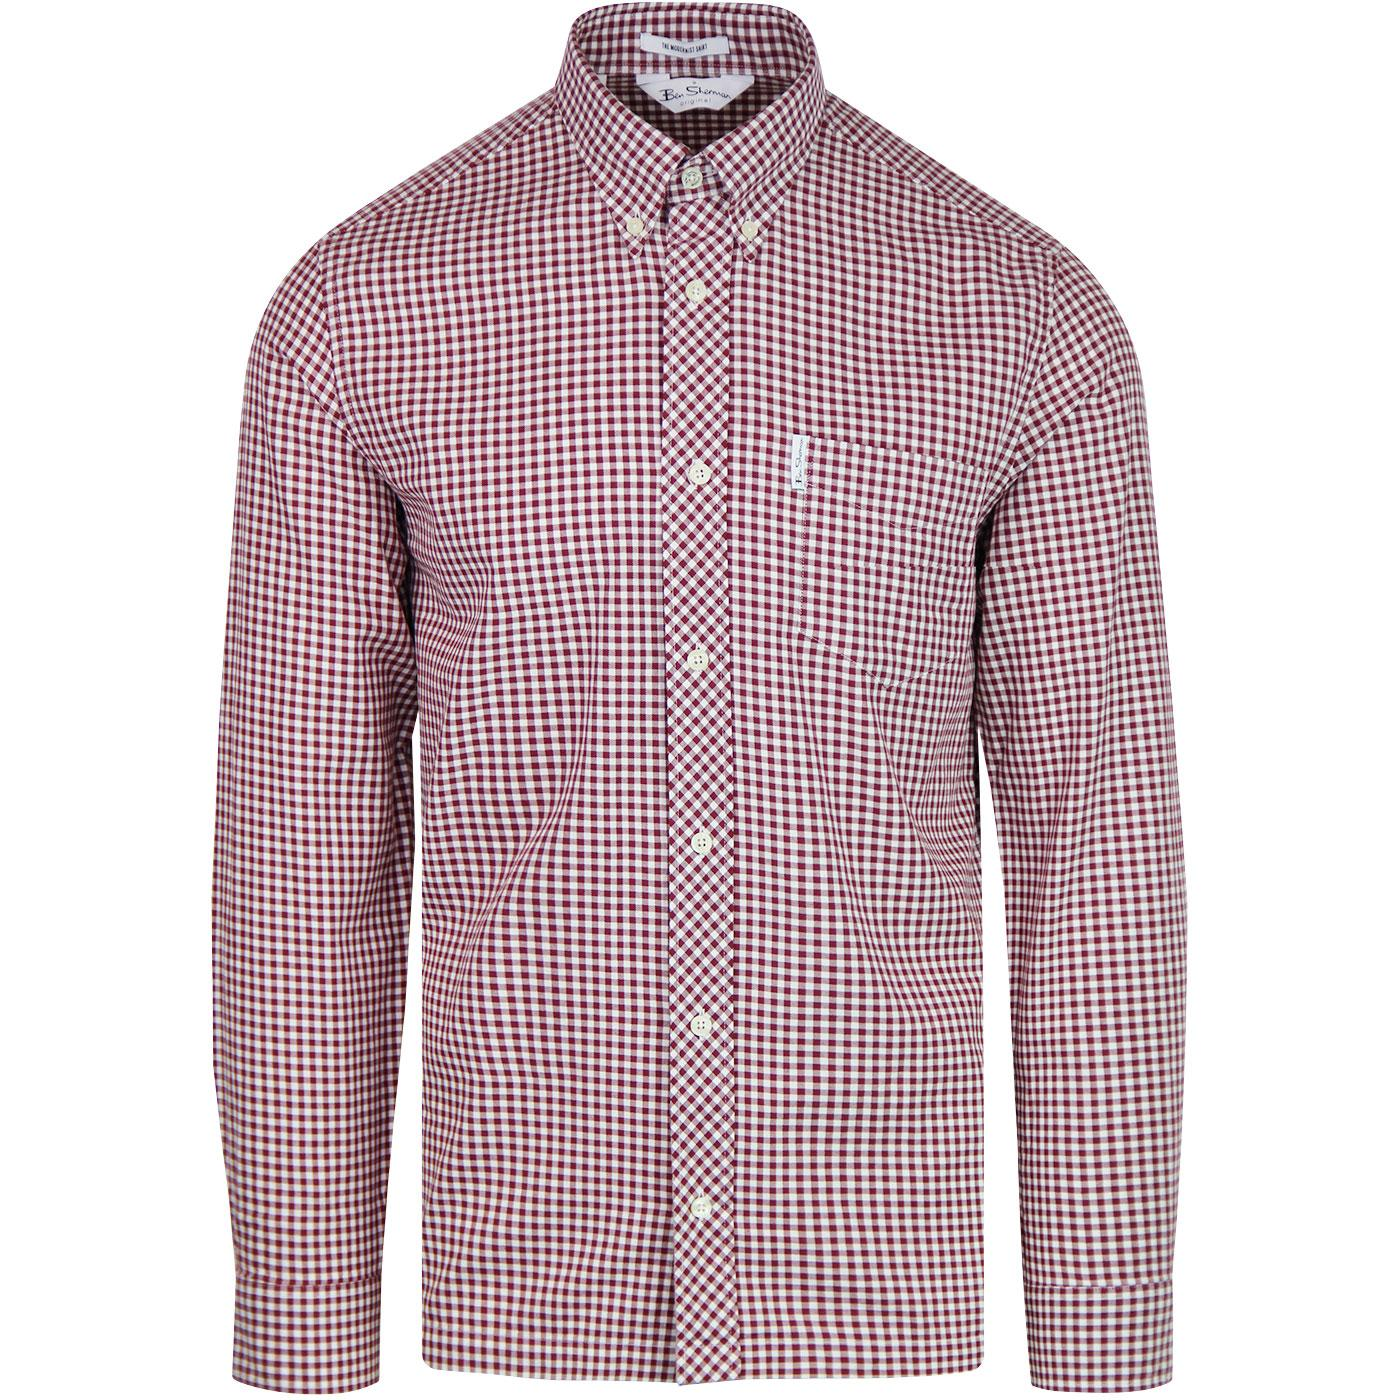 Modernist BEN SHERMAN 60s Archive Check Shirt WINE